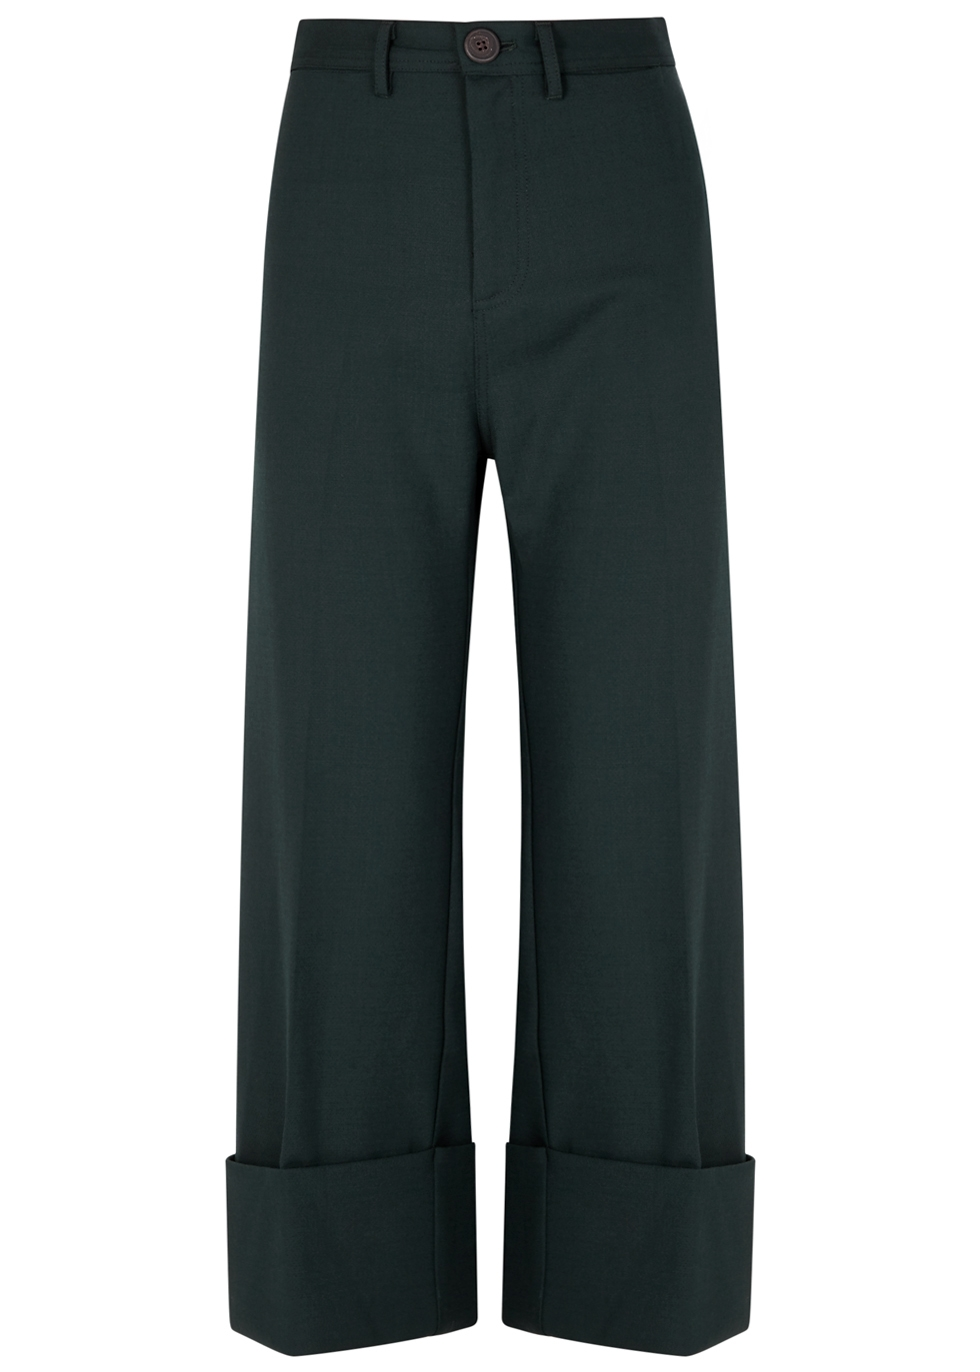 SEA NY Tradition Forest Green Wide-Leg Trousers